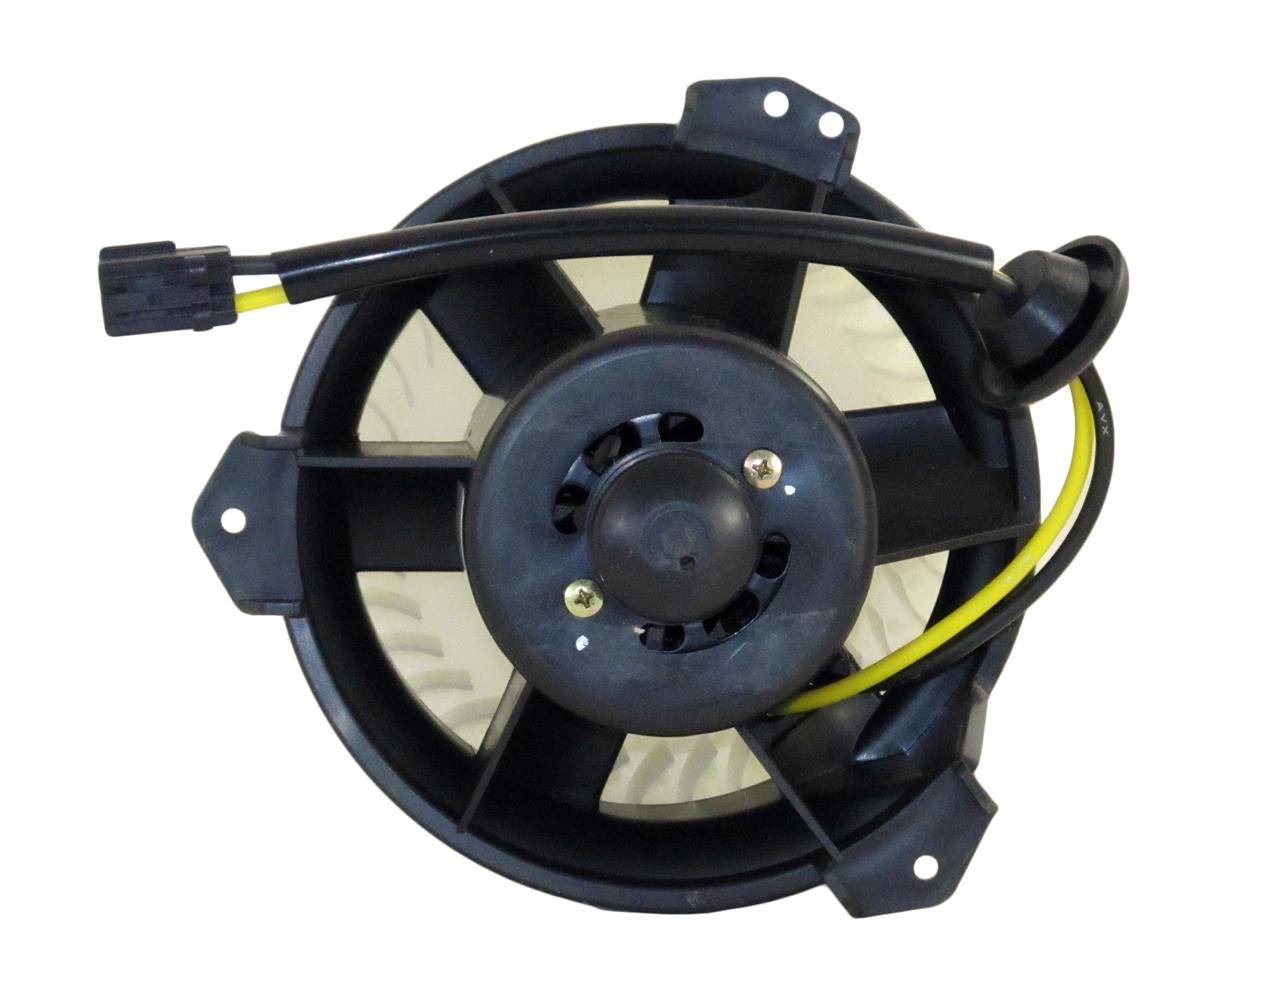 Chrysler Pacifica Fuel Pump moreover How To Install Fuel Pump E M Or E M Chrysler Pacifica V Lnd Lkuazog likewise  moreover Nissan Altima Not Power Going To The Fuel Pum hich Fuse in addition Parker J Crimp Hydraulic Hose Fitting Male Seal Lok O Ring. on 2005 chrysler pacifica fuel pump